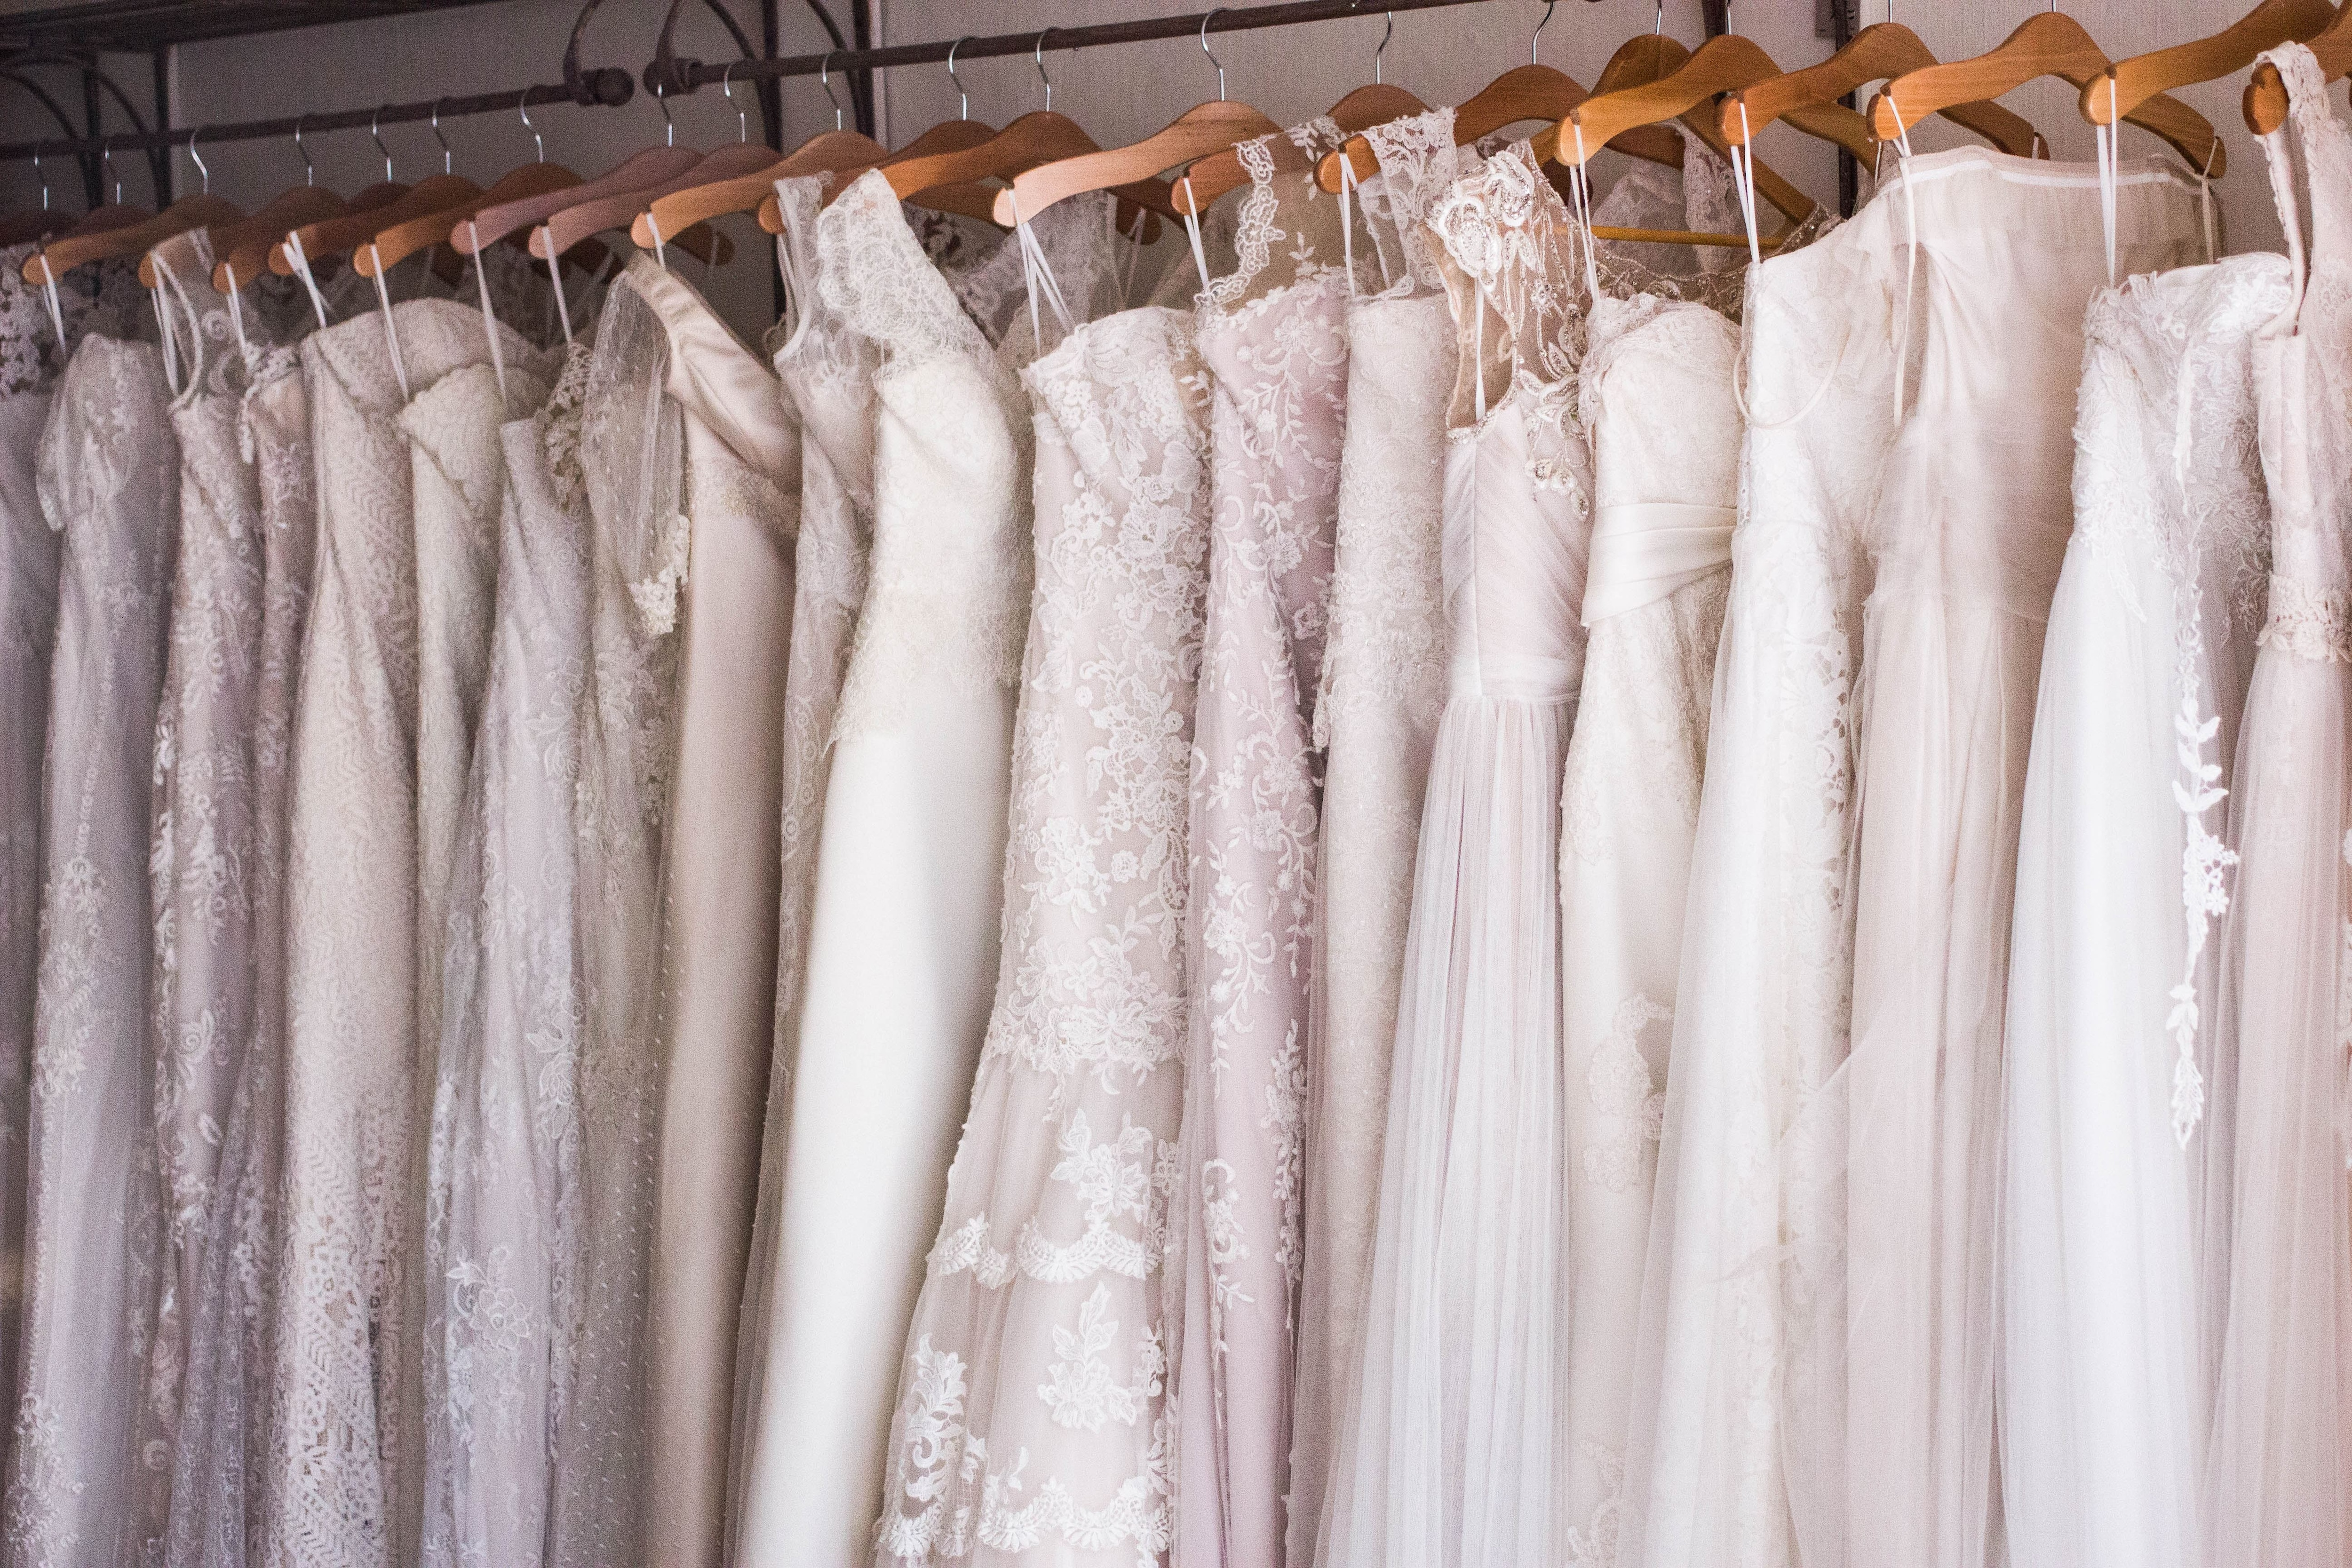 wedding dresses hanging on rack side by side on wooden hangers